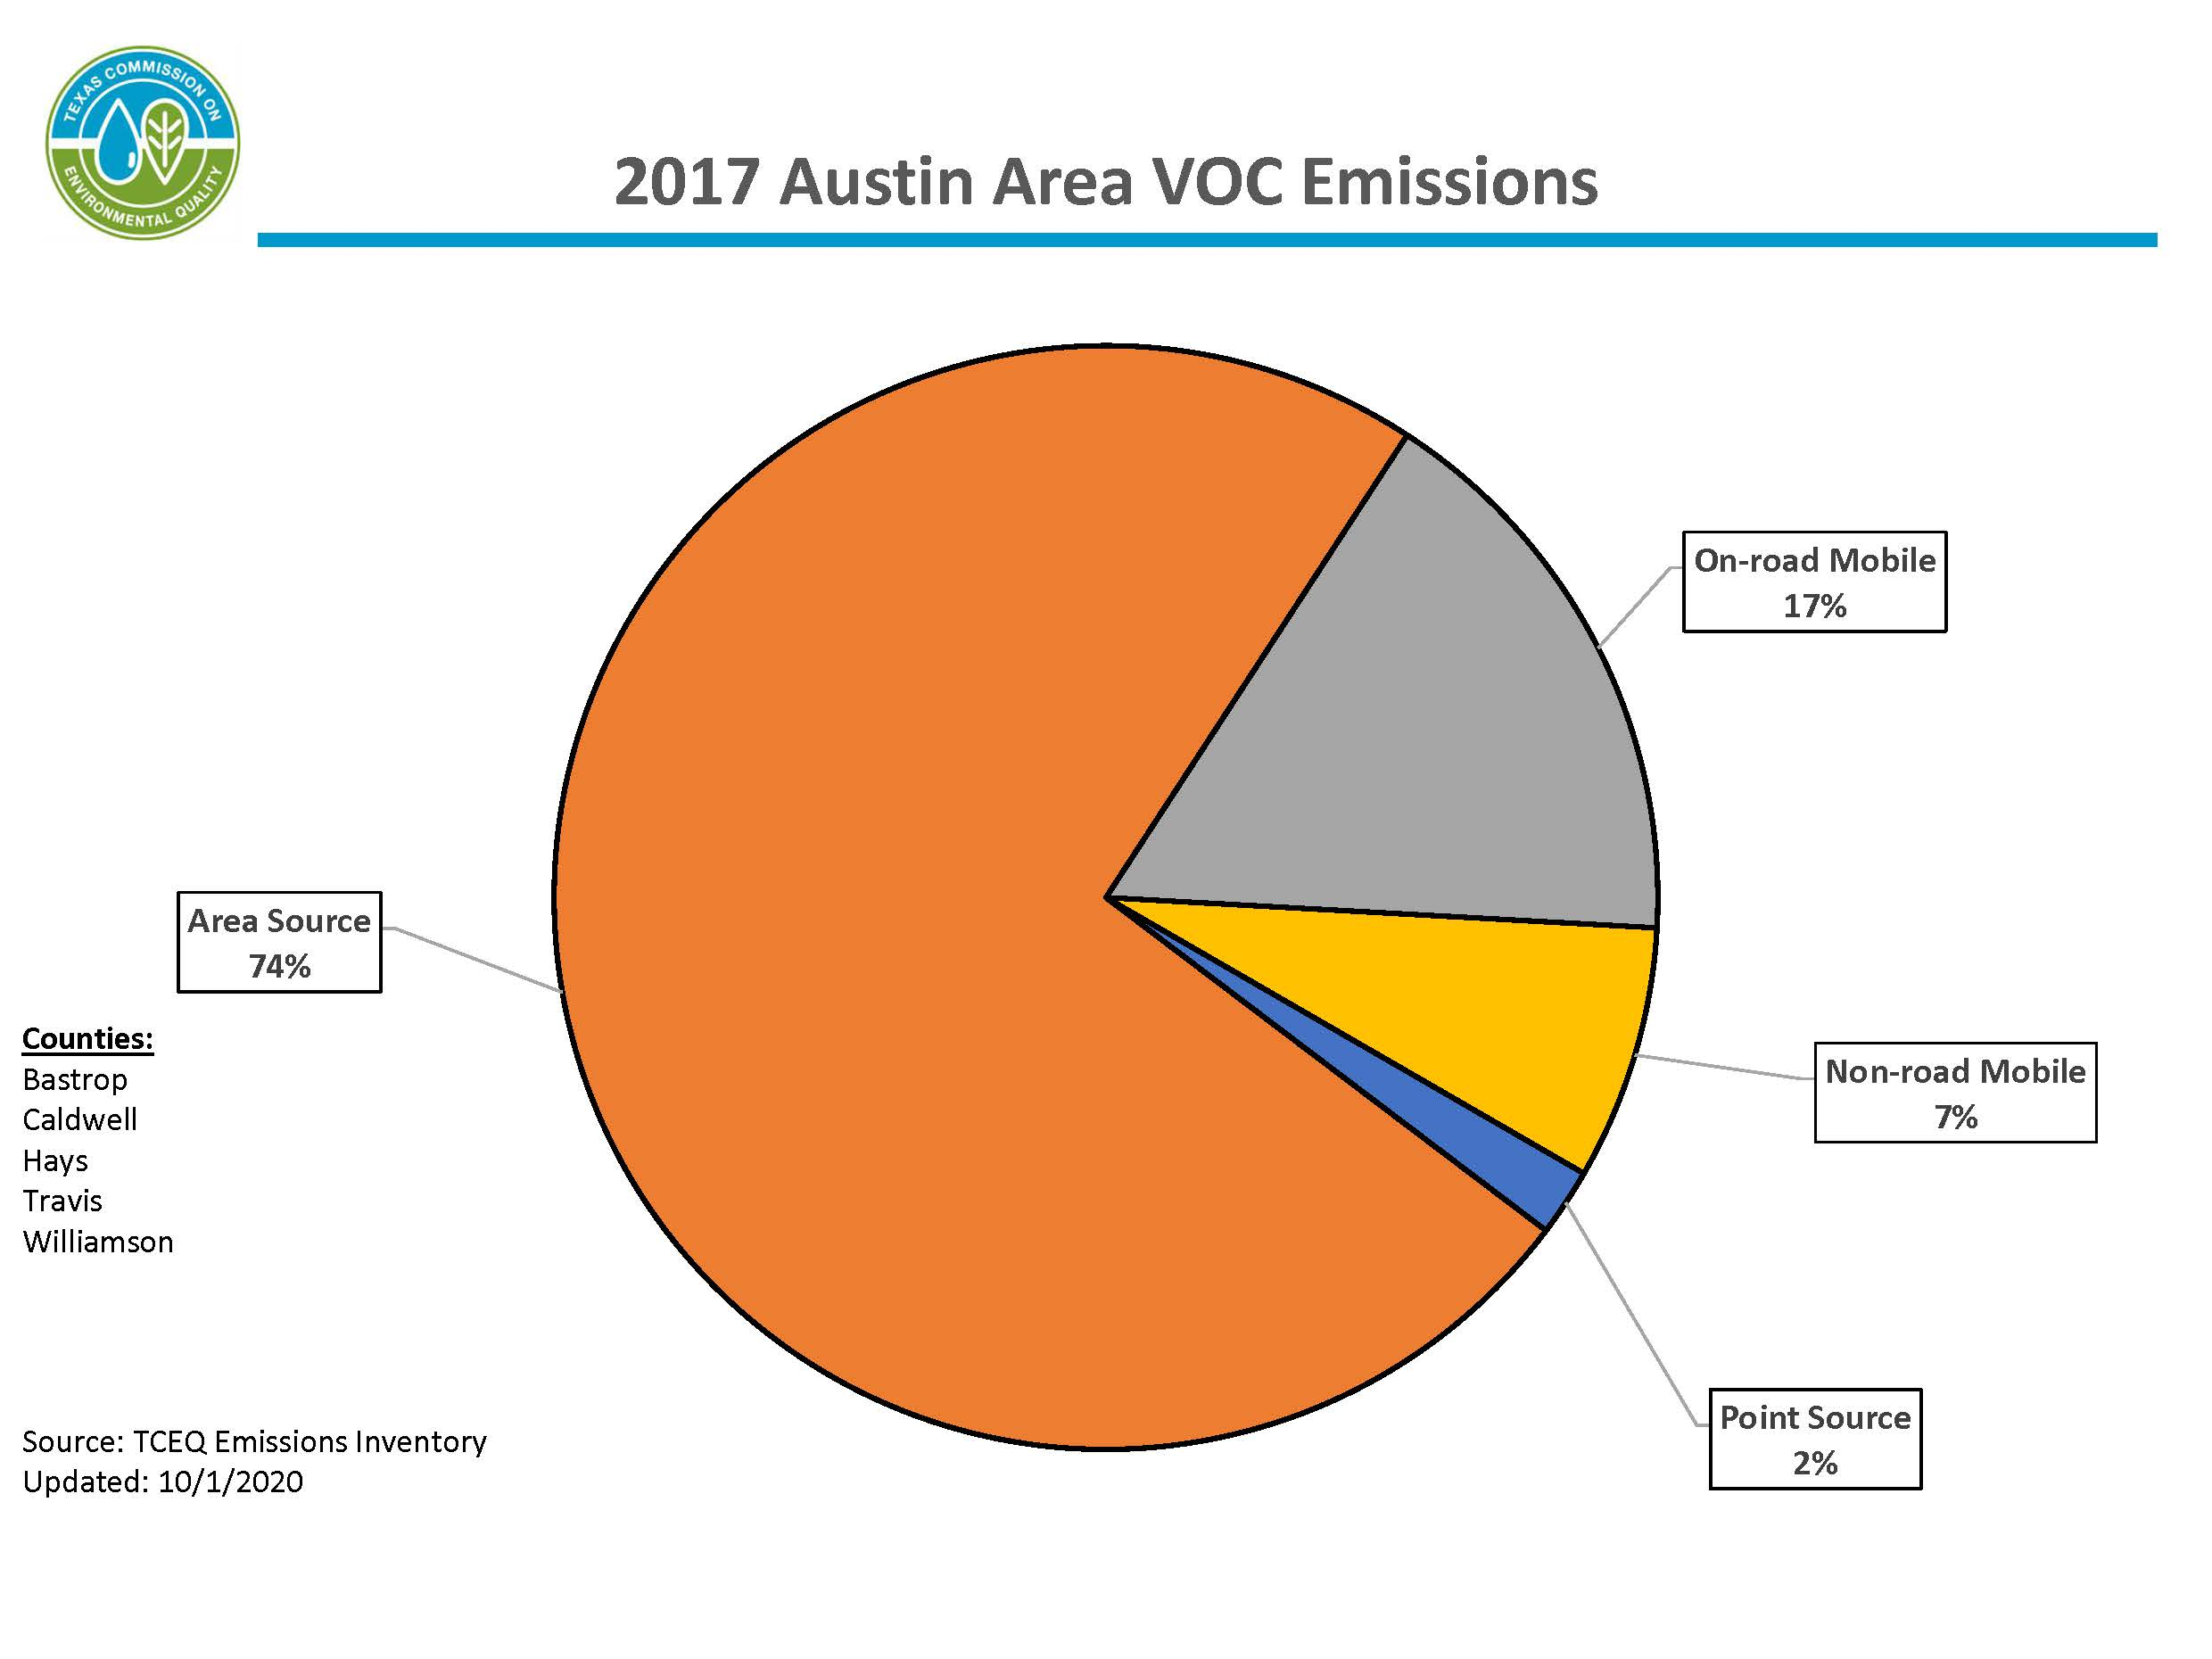 This chart represents calendar year 2017 volatile organic compound emissions for the Austin area. The Austin area includes Bastrop, Caldwell, Hays, Travis, and Williamson counties. 74 percent of emissions are from area sources, 24 percent of emissions are from mobile sources, and 2 percent of emissions are from point sources.